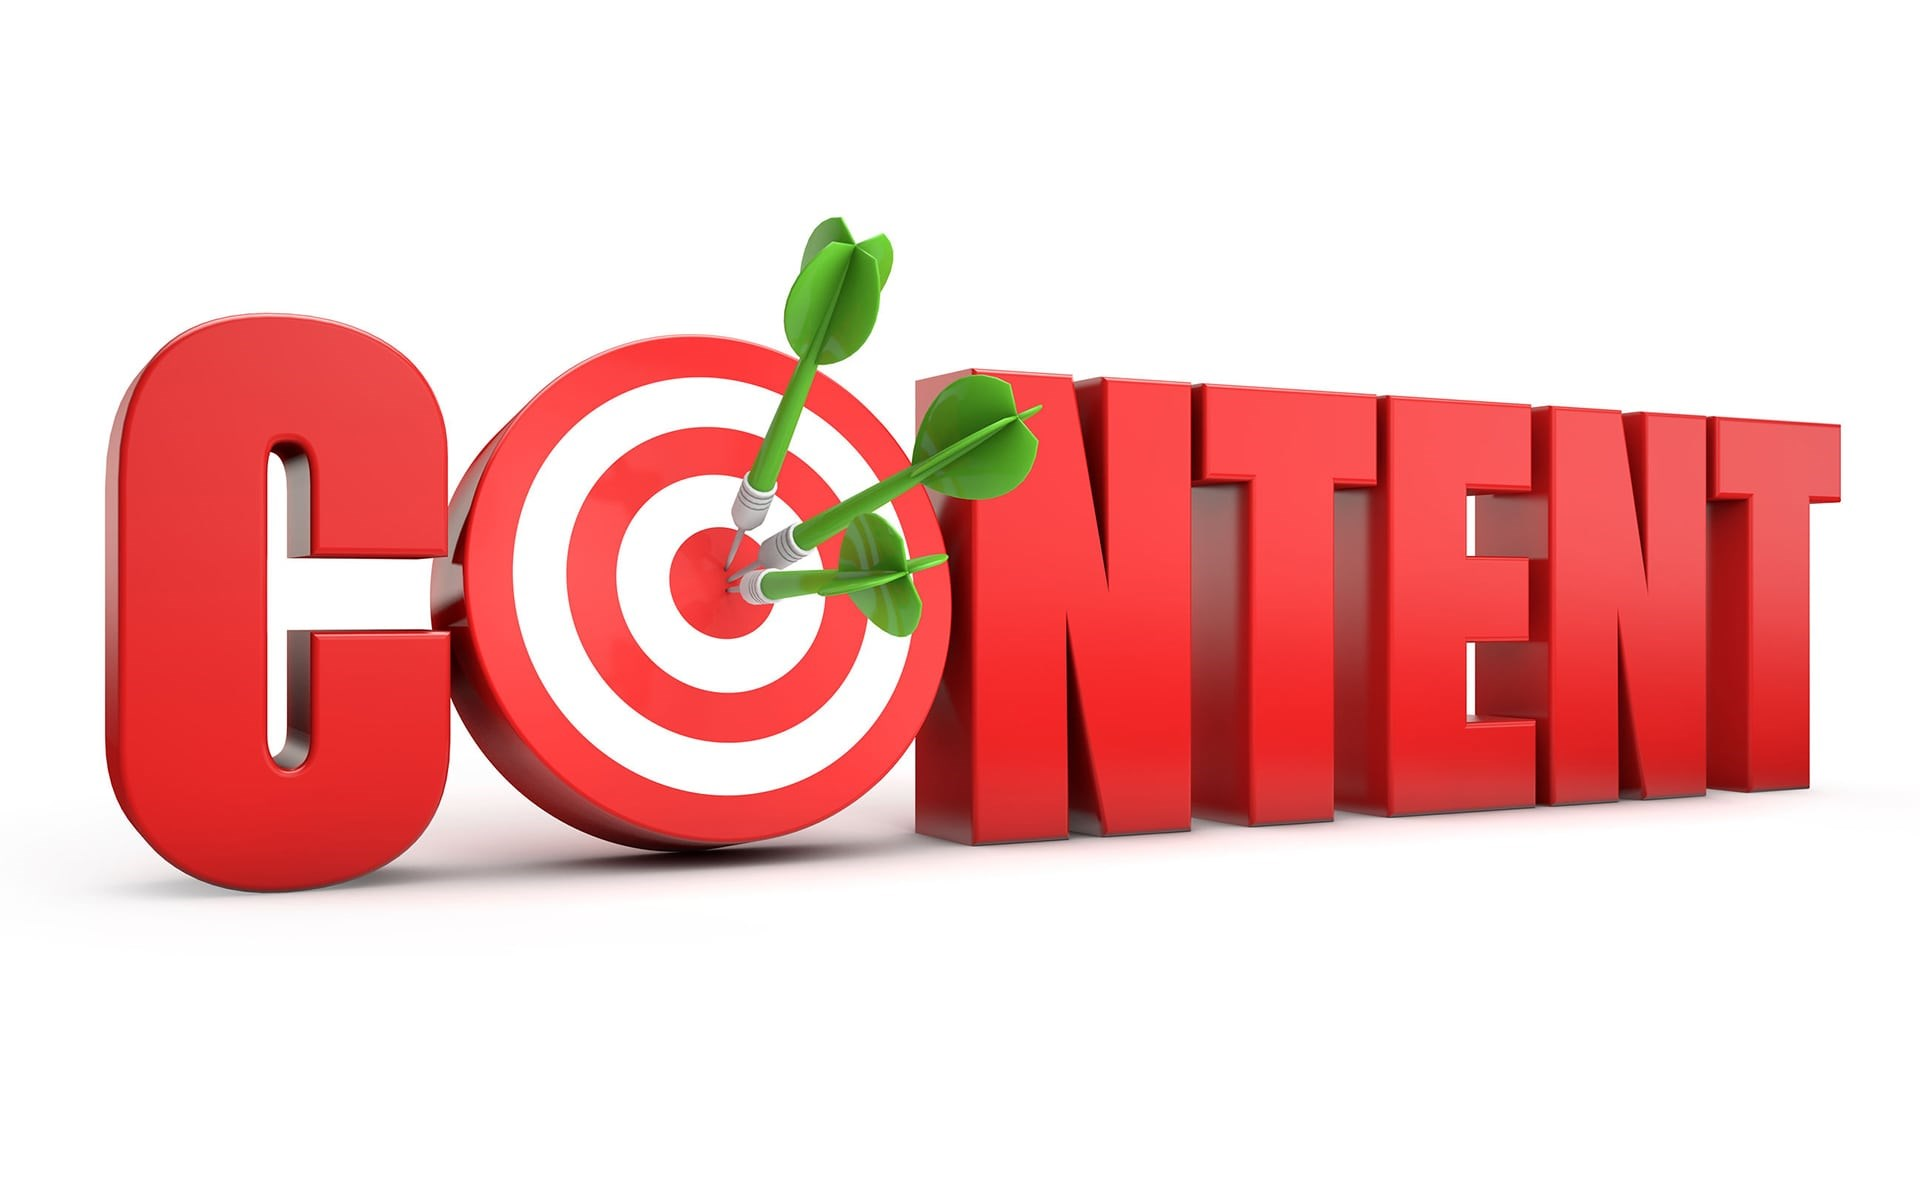 Why is fresh content important for websites?